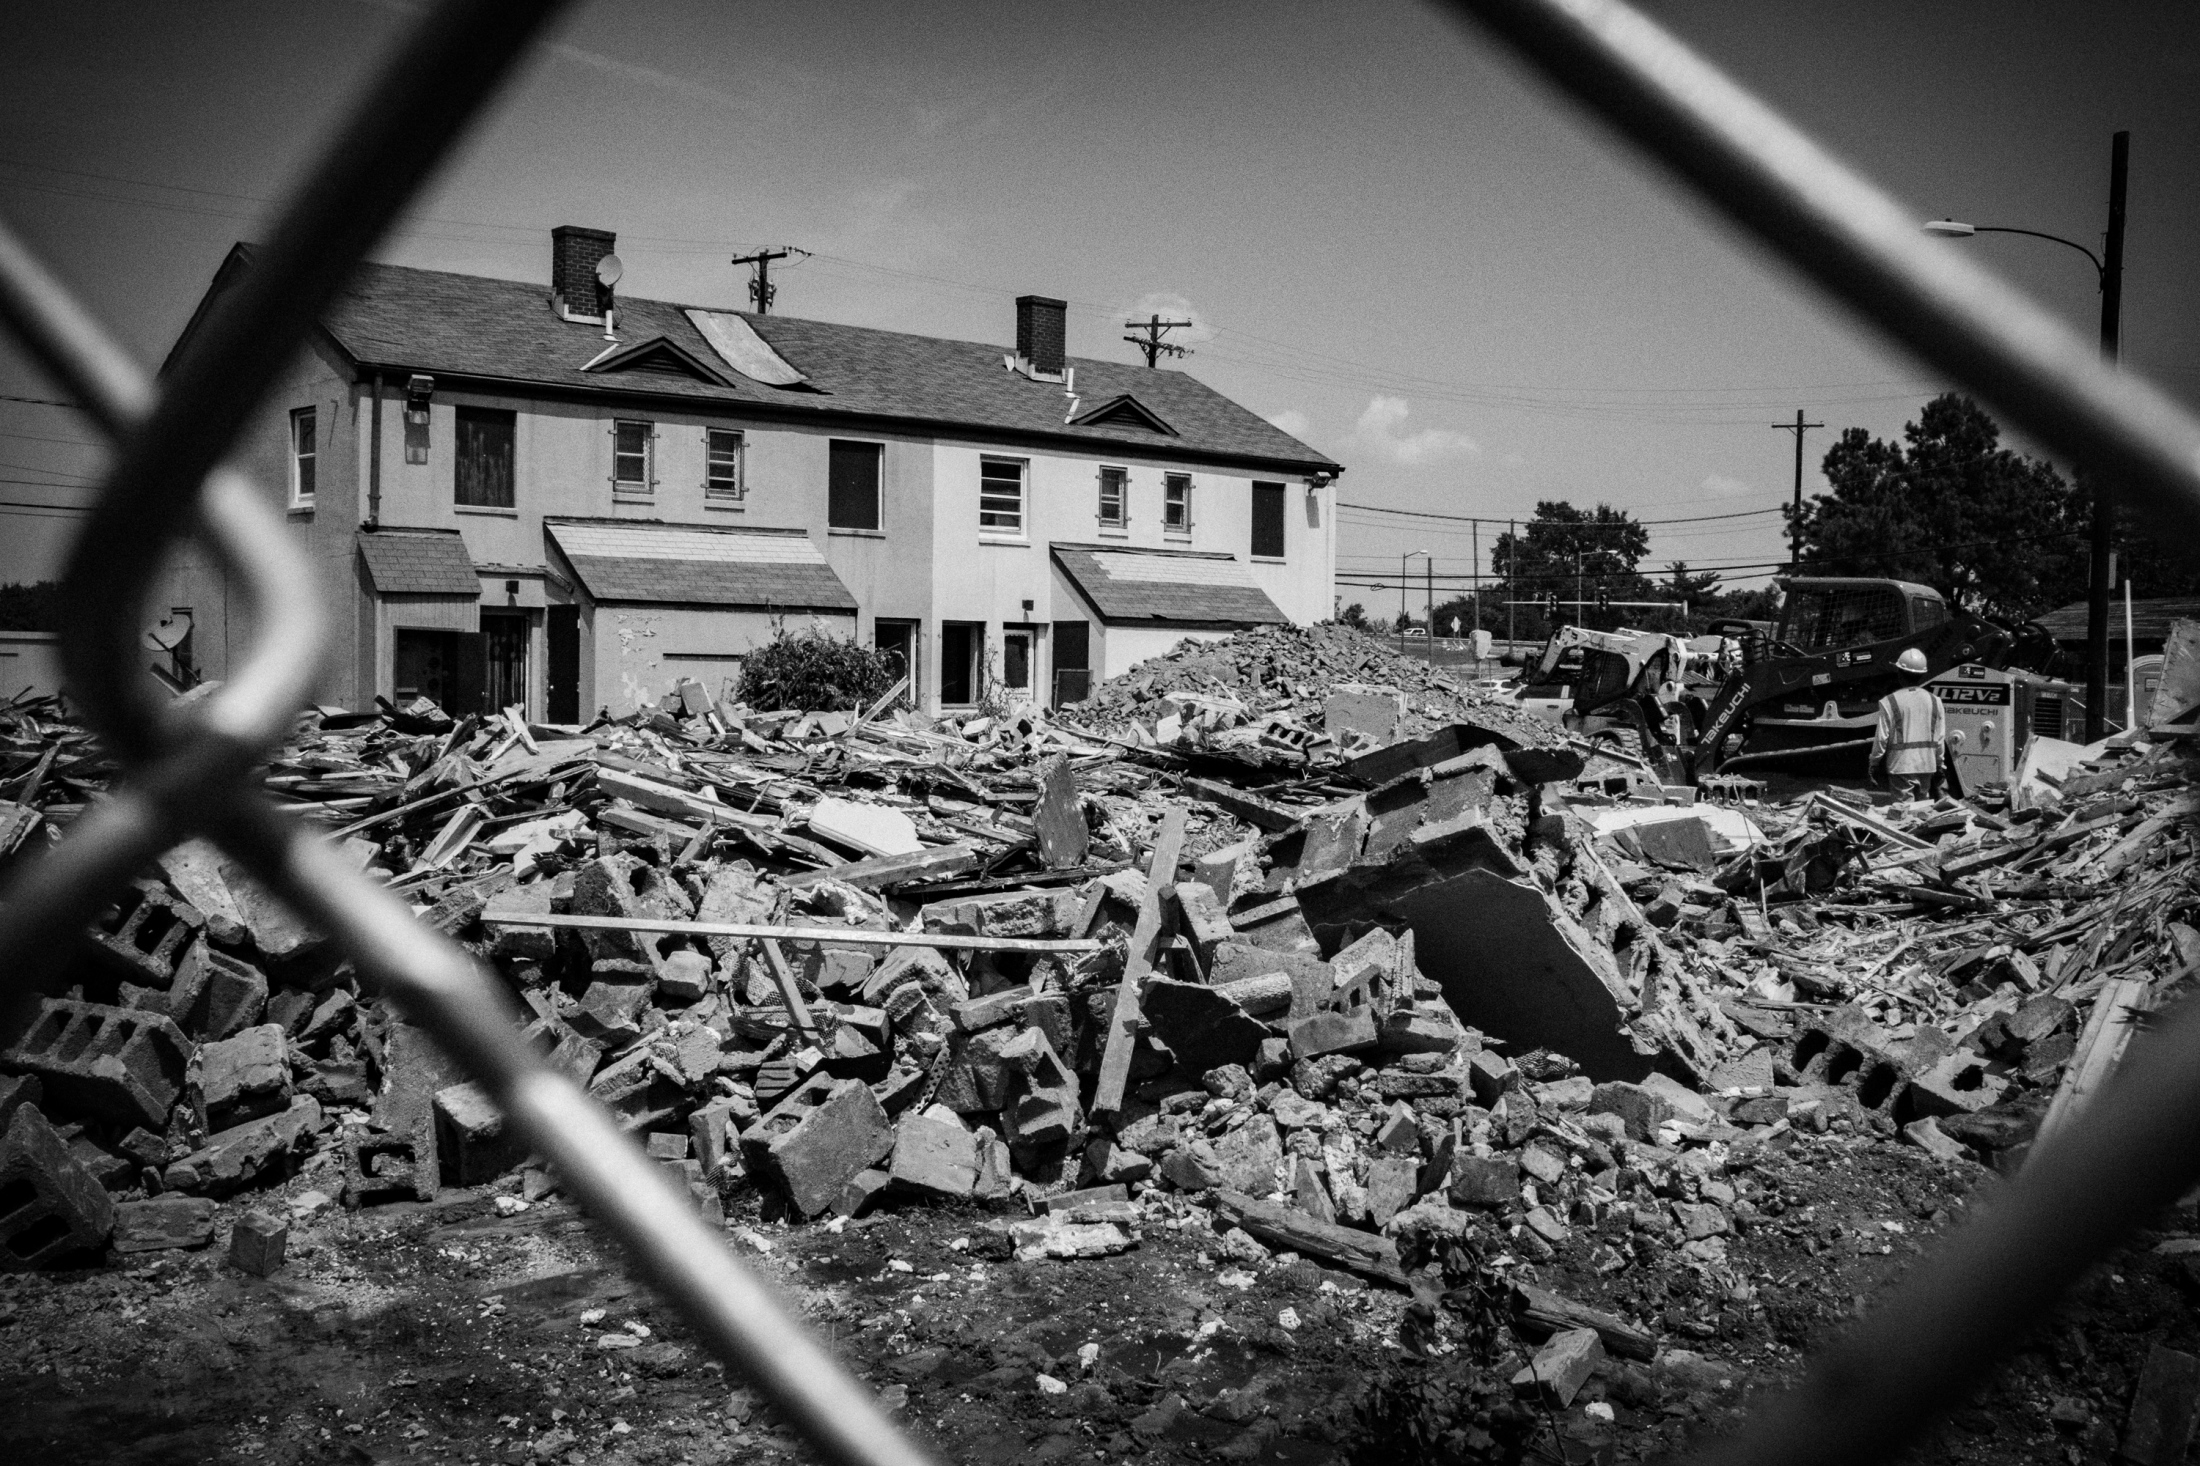 A group of Barry Farm tenants and their allies filed a lawsuit that caused redevelopment plans for their community to be sent back to the zoning commission in April. That could slow redevelopment, but relocation, demolition and infrastructure work are still authorized to continue. Here, the rubble of vacated Barry Farm units demolished in August.